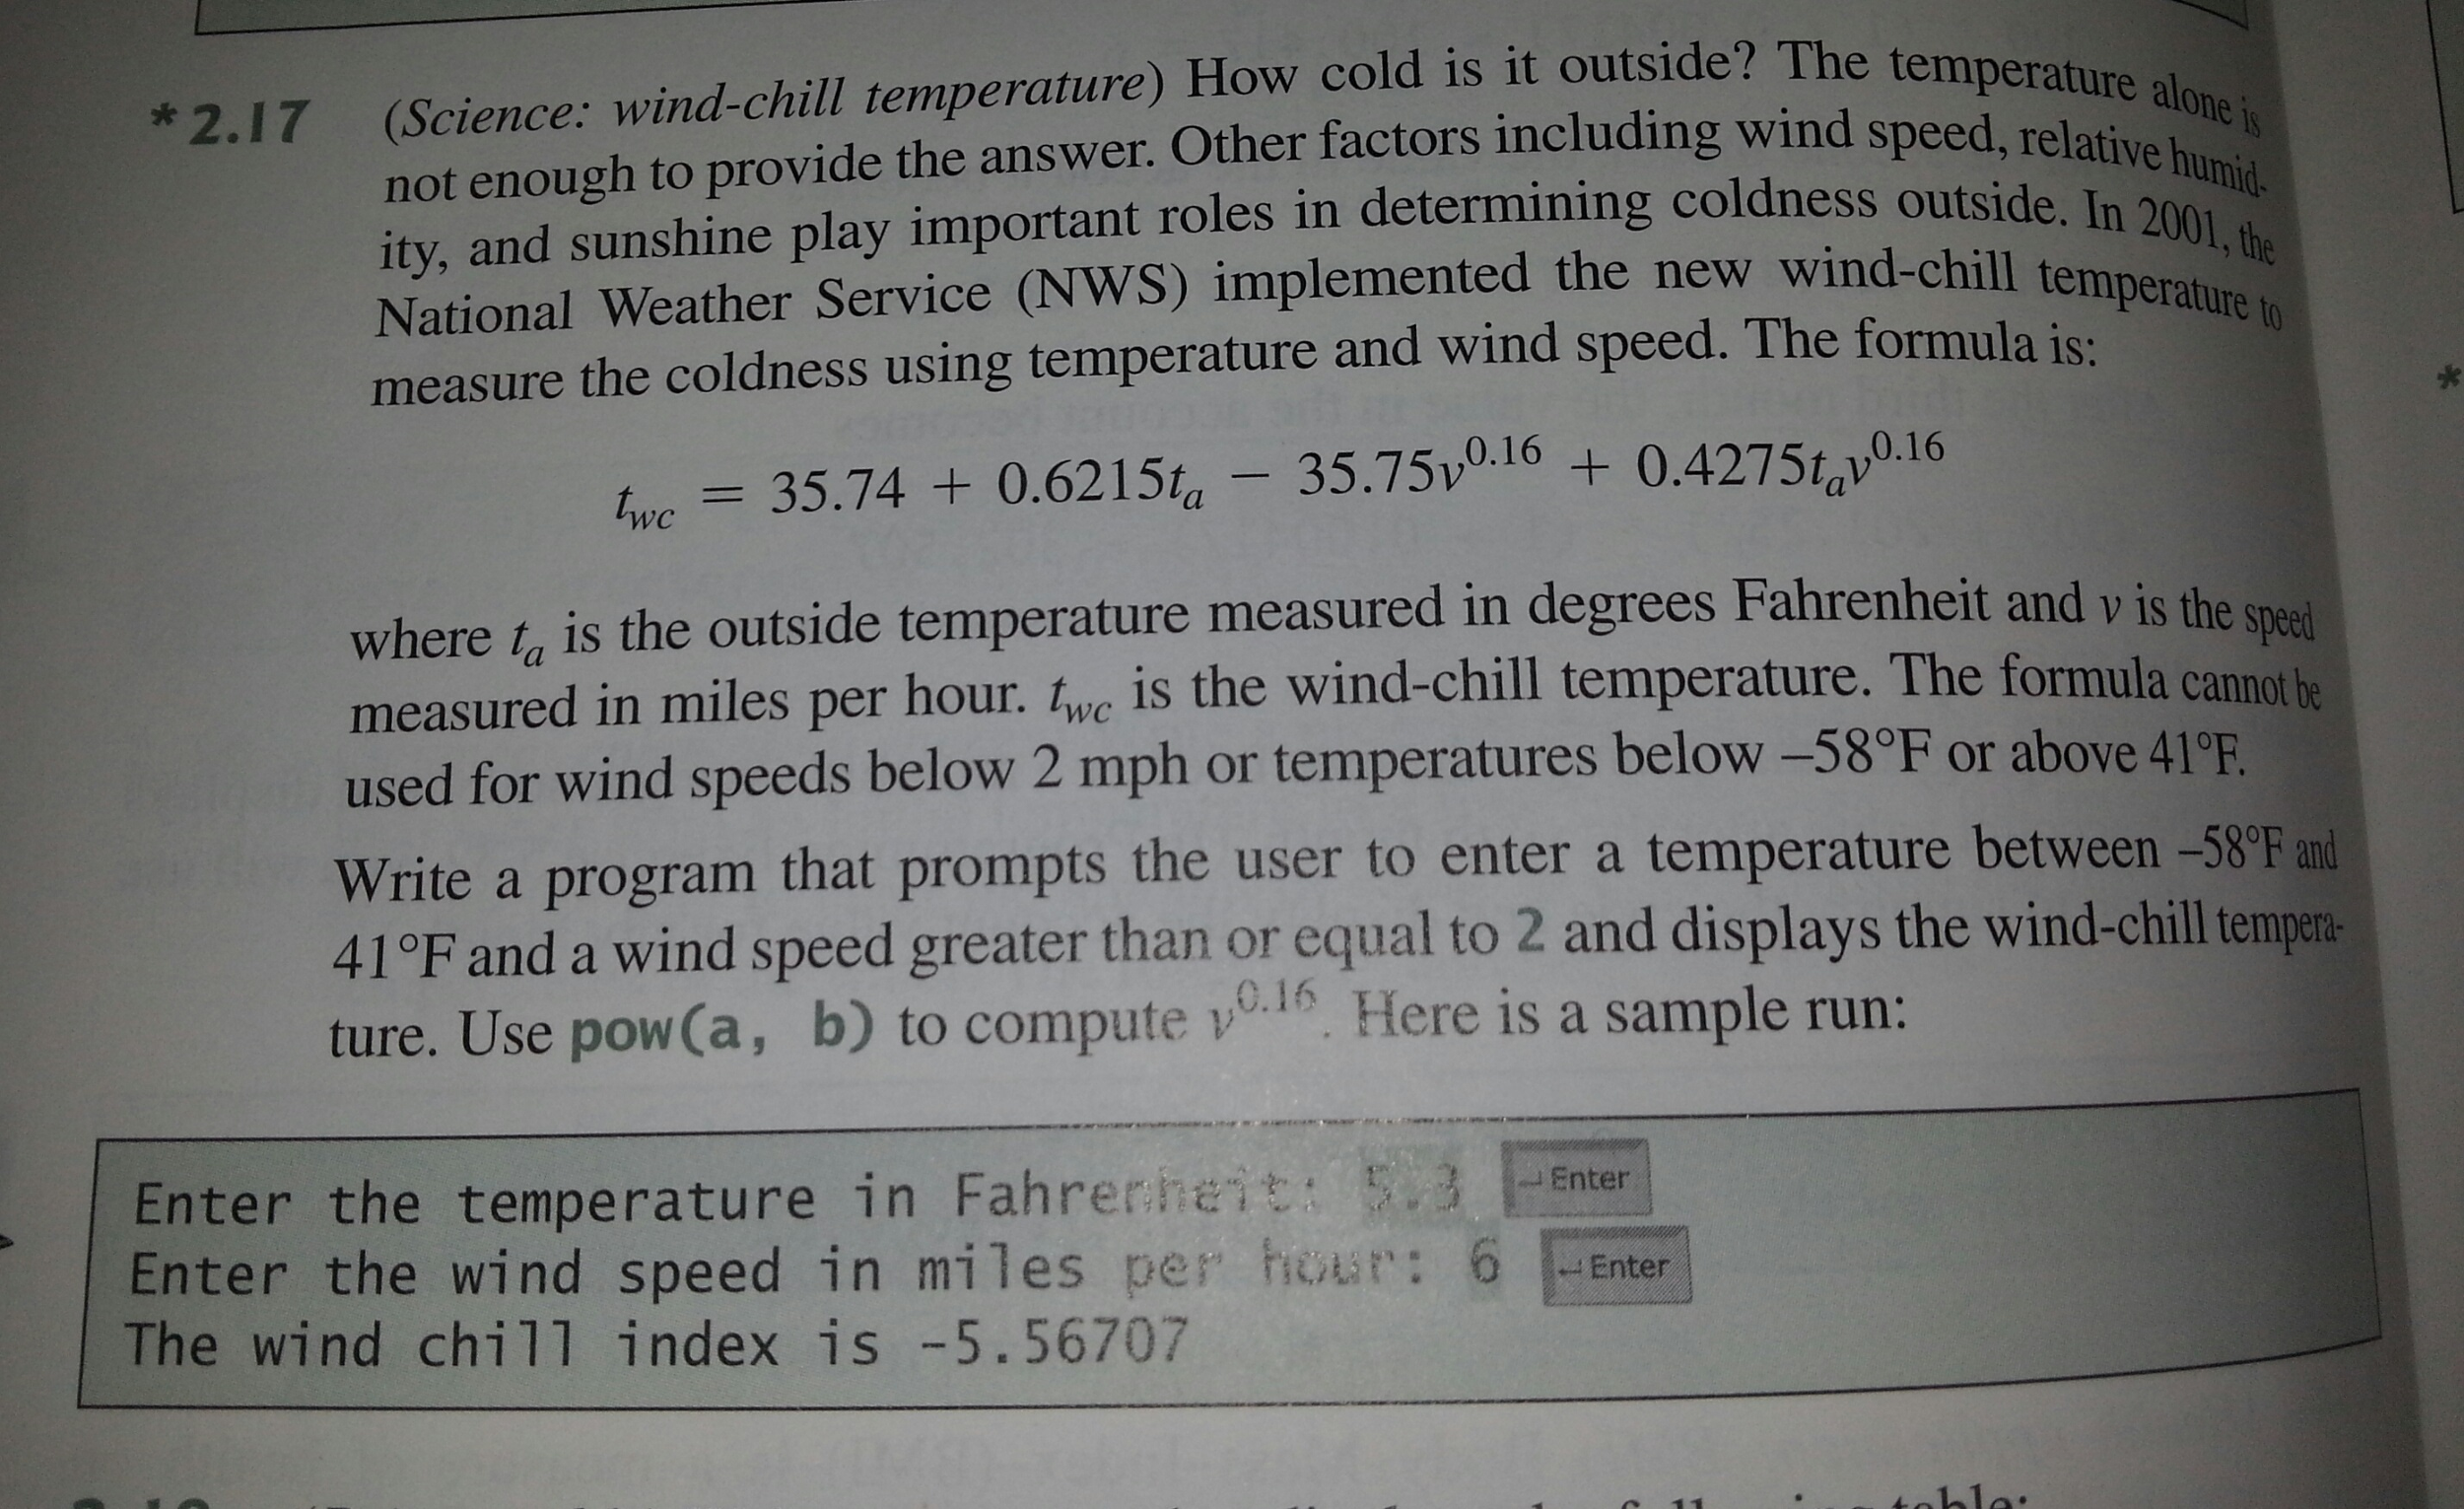 Show Transcribed Image Text How Cold Is It Outside? The Temperature Alone  Is Not Enough To Provide The Answer Other Factors Including Wind Speed,